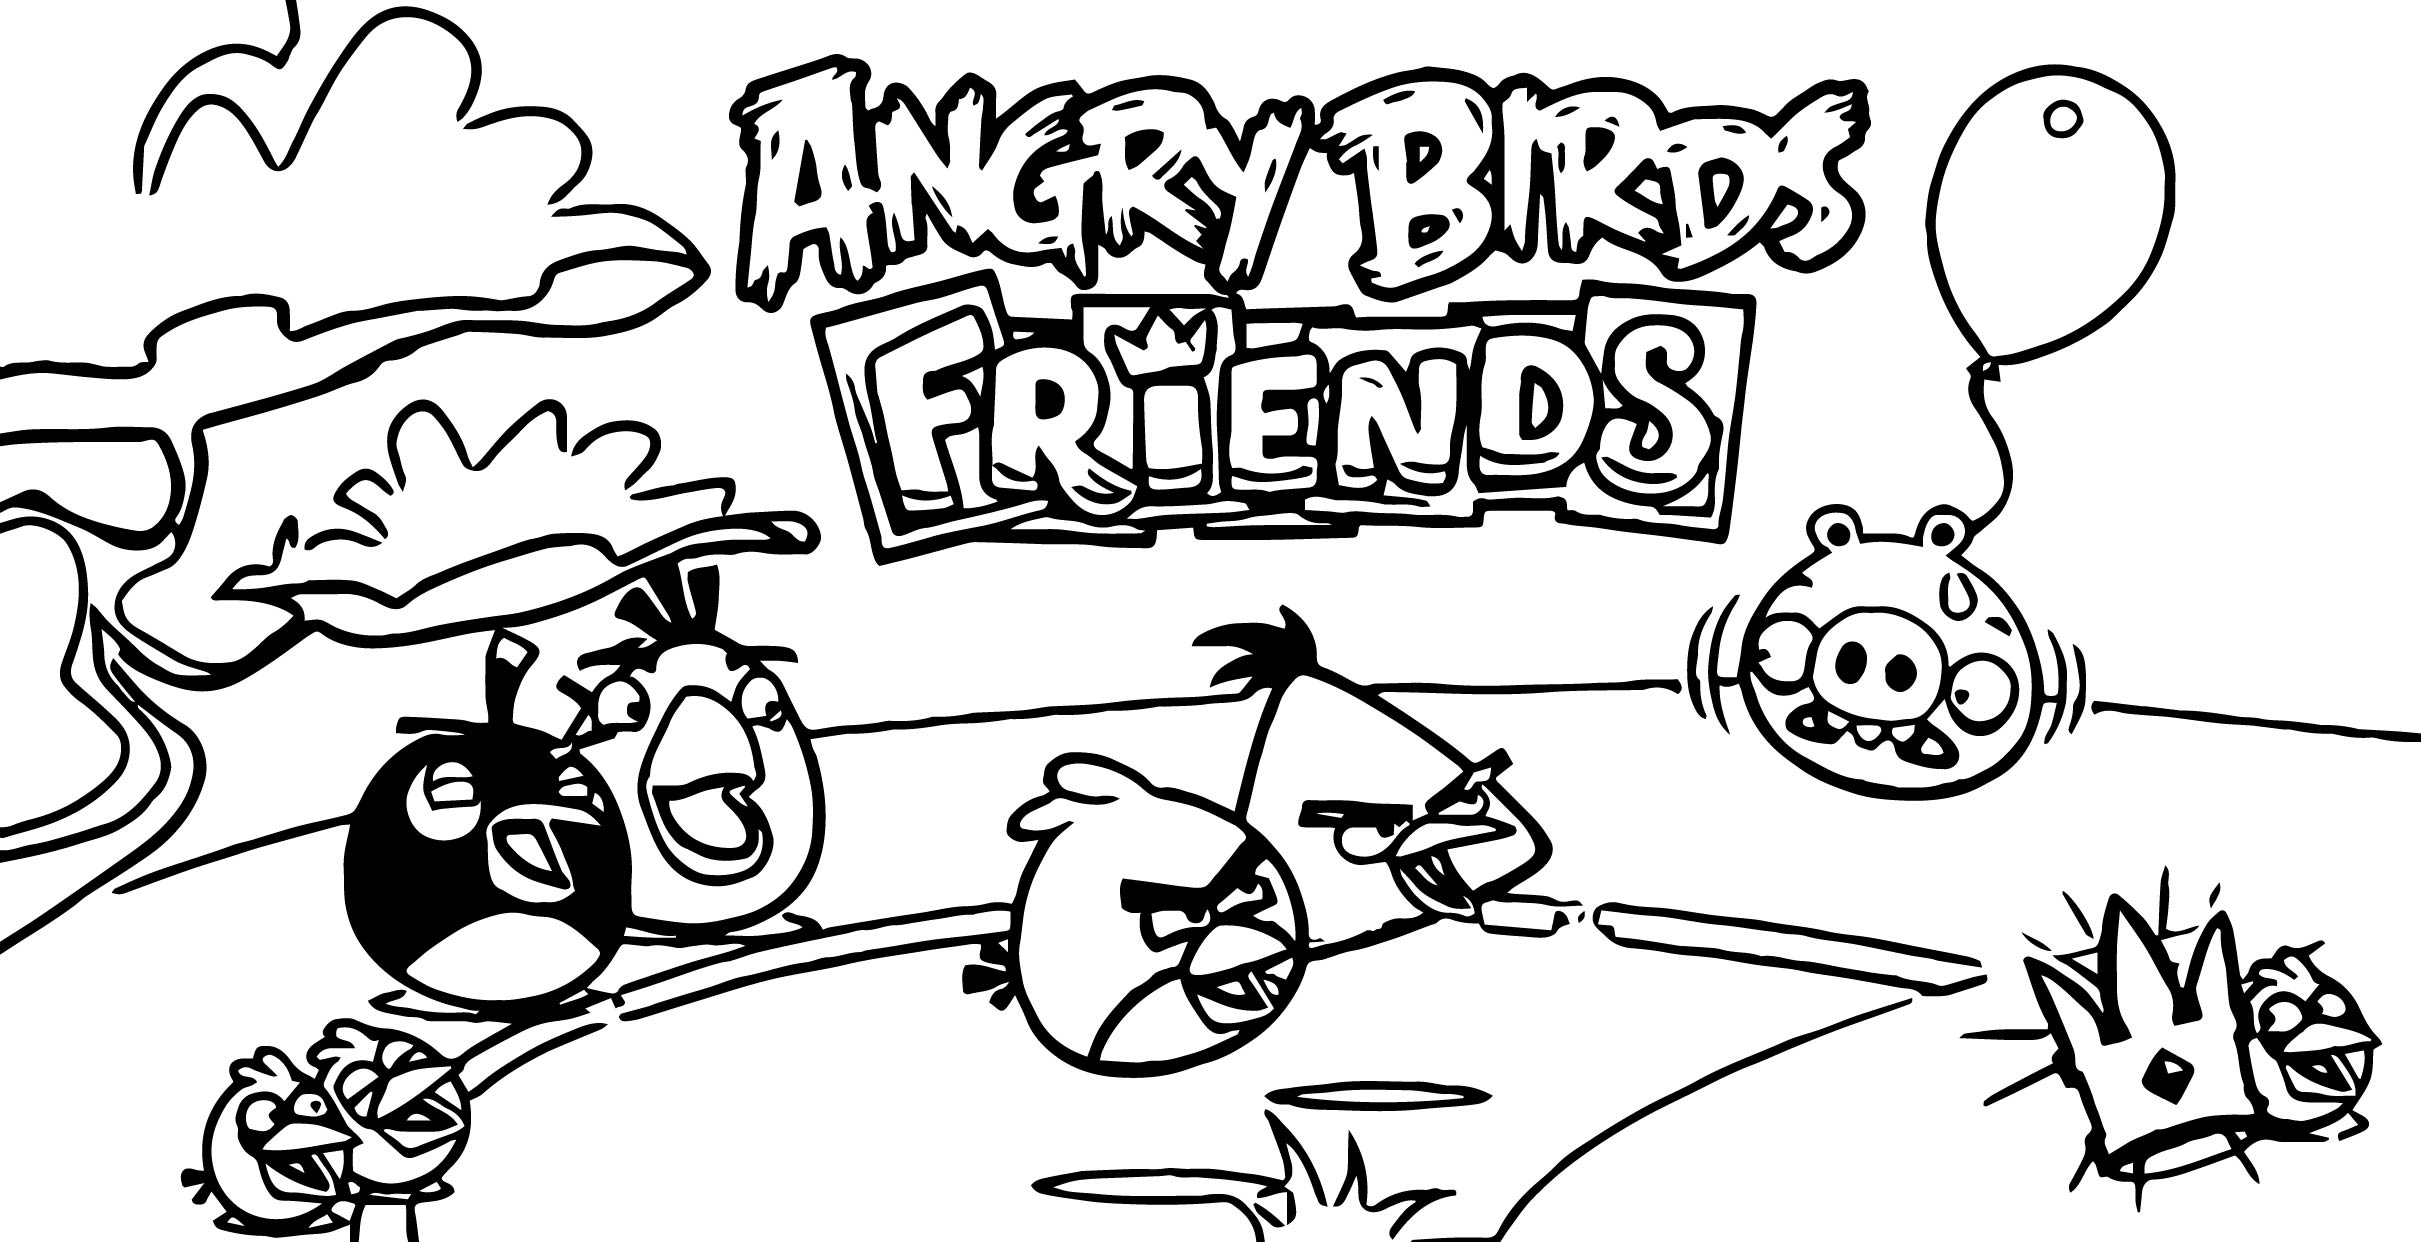 Angry birds friends coloring page for Angry birds rio coloring pages